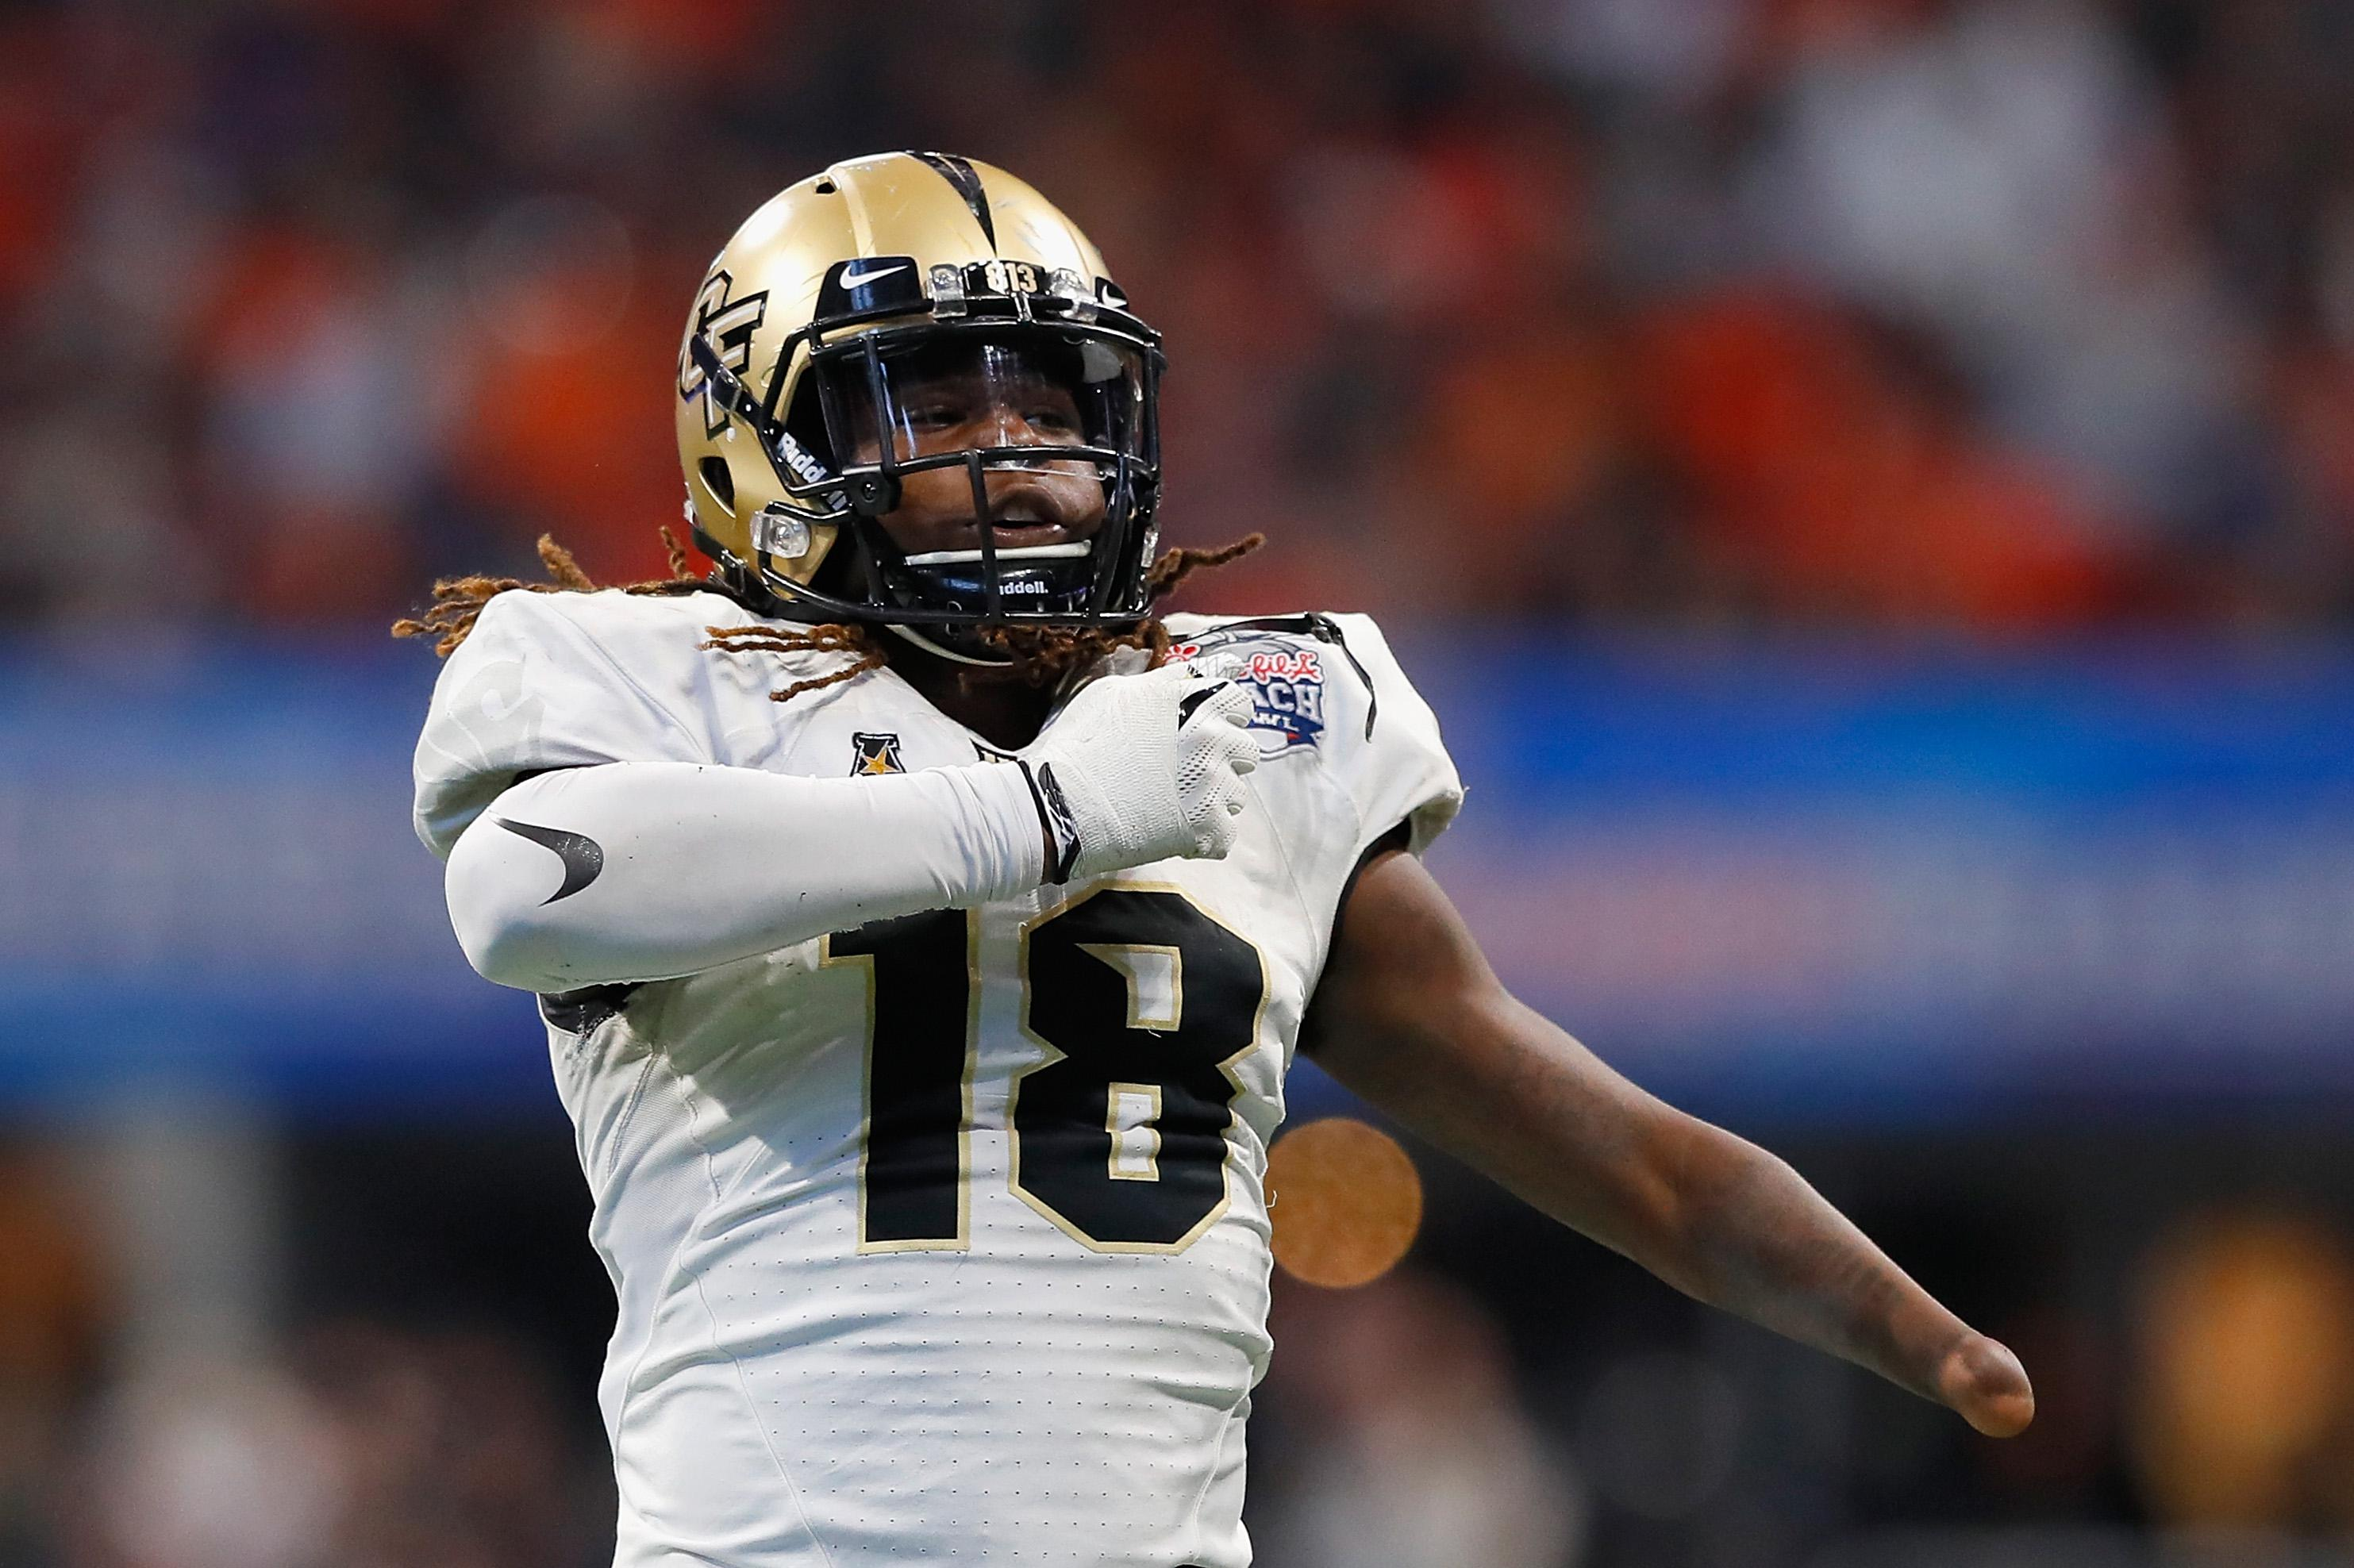 ATLANTA, GA - JANUARY 01:  Shaquem Griffin #18 of the UCF Knights celebrates after sacking Jarrett Stidham #8 of the Auburn Tigers (not pictured) in the second half during the Chick-fil-A Peach Bowl at Mercedes-Benz Stadium on January 1, 2018 in Atlanta, Georgia.  (Photo by Kevin C. Cox/Getty Images)